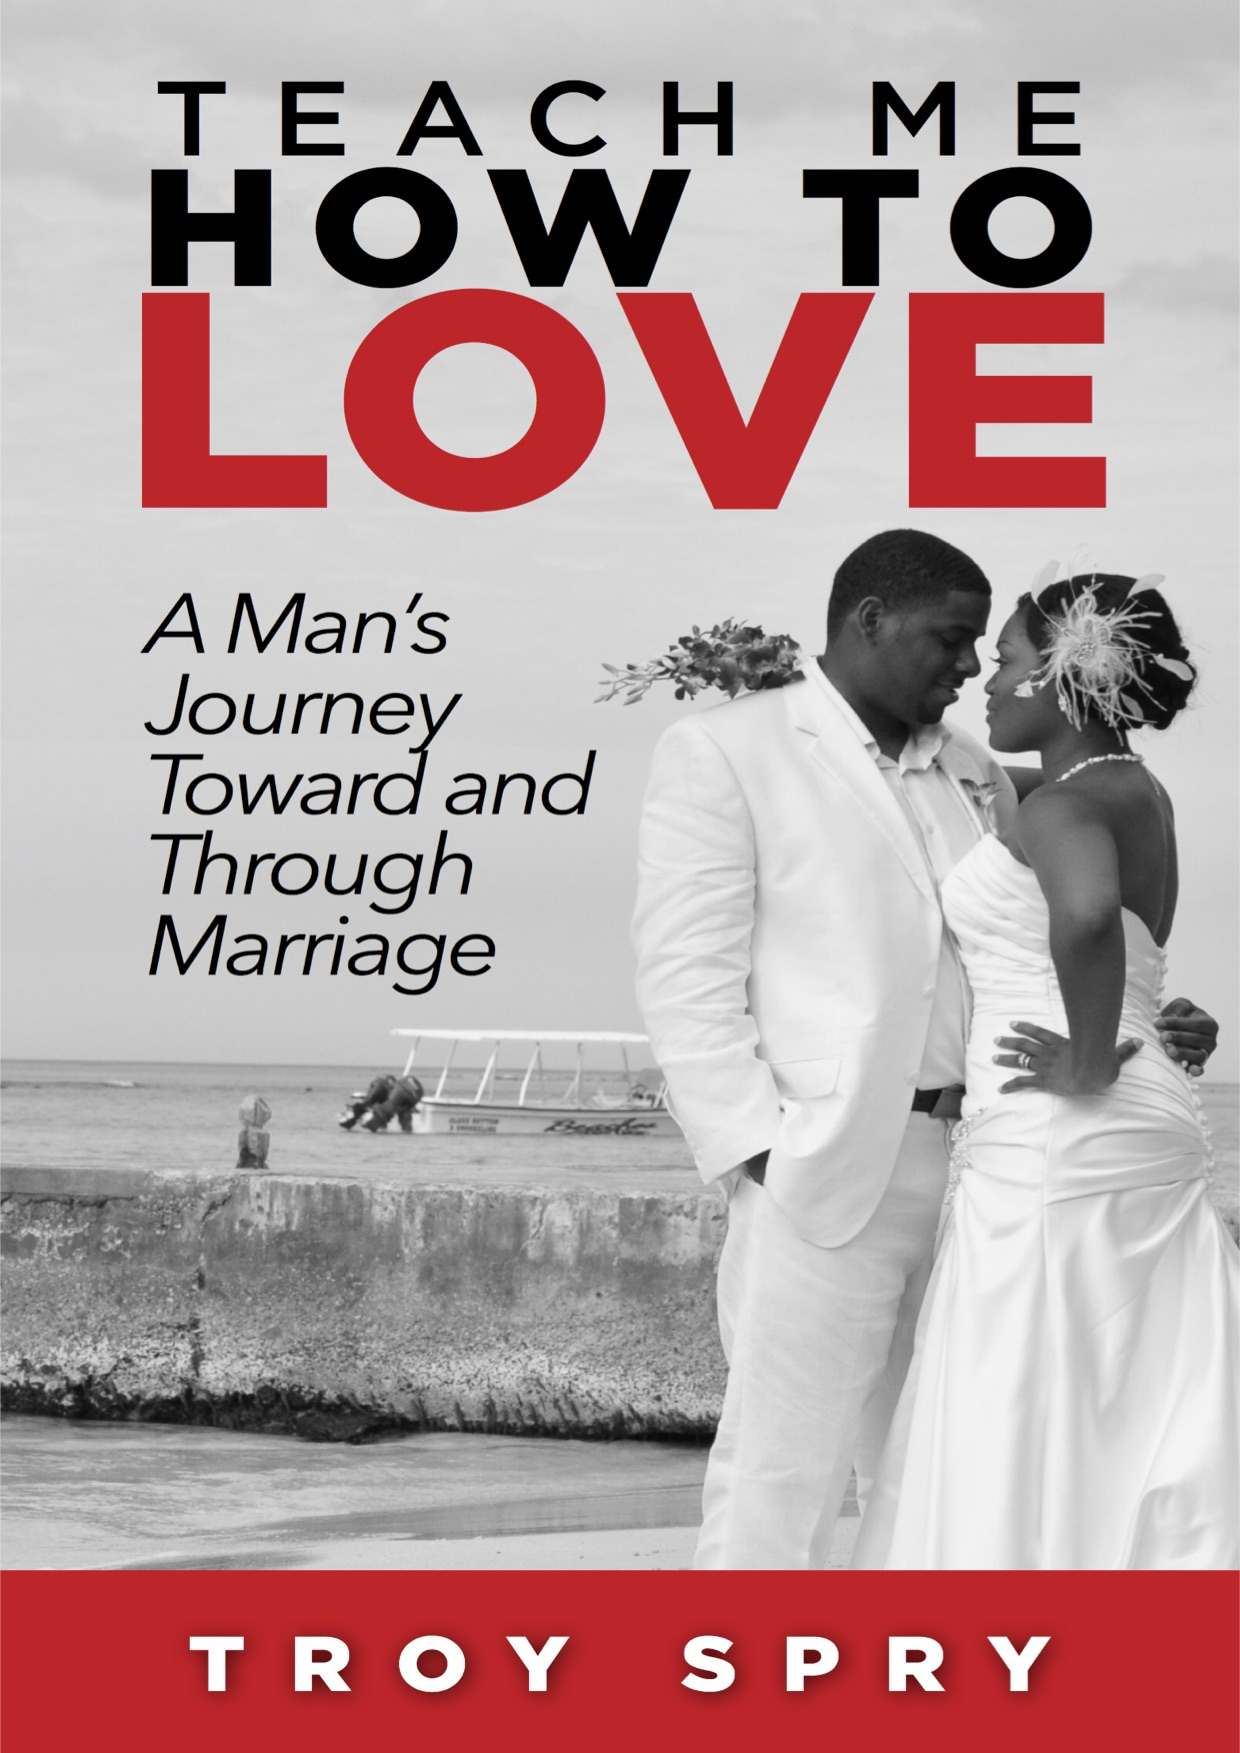 Teach Me How To Love A Man's Journey Toward and Through Marriage E-Book